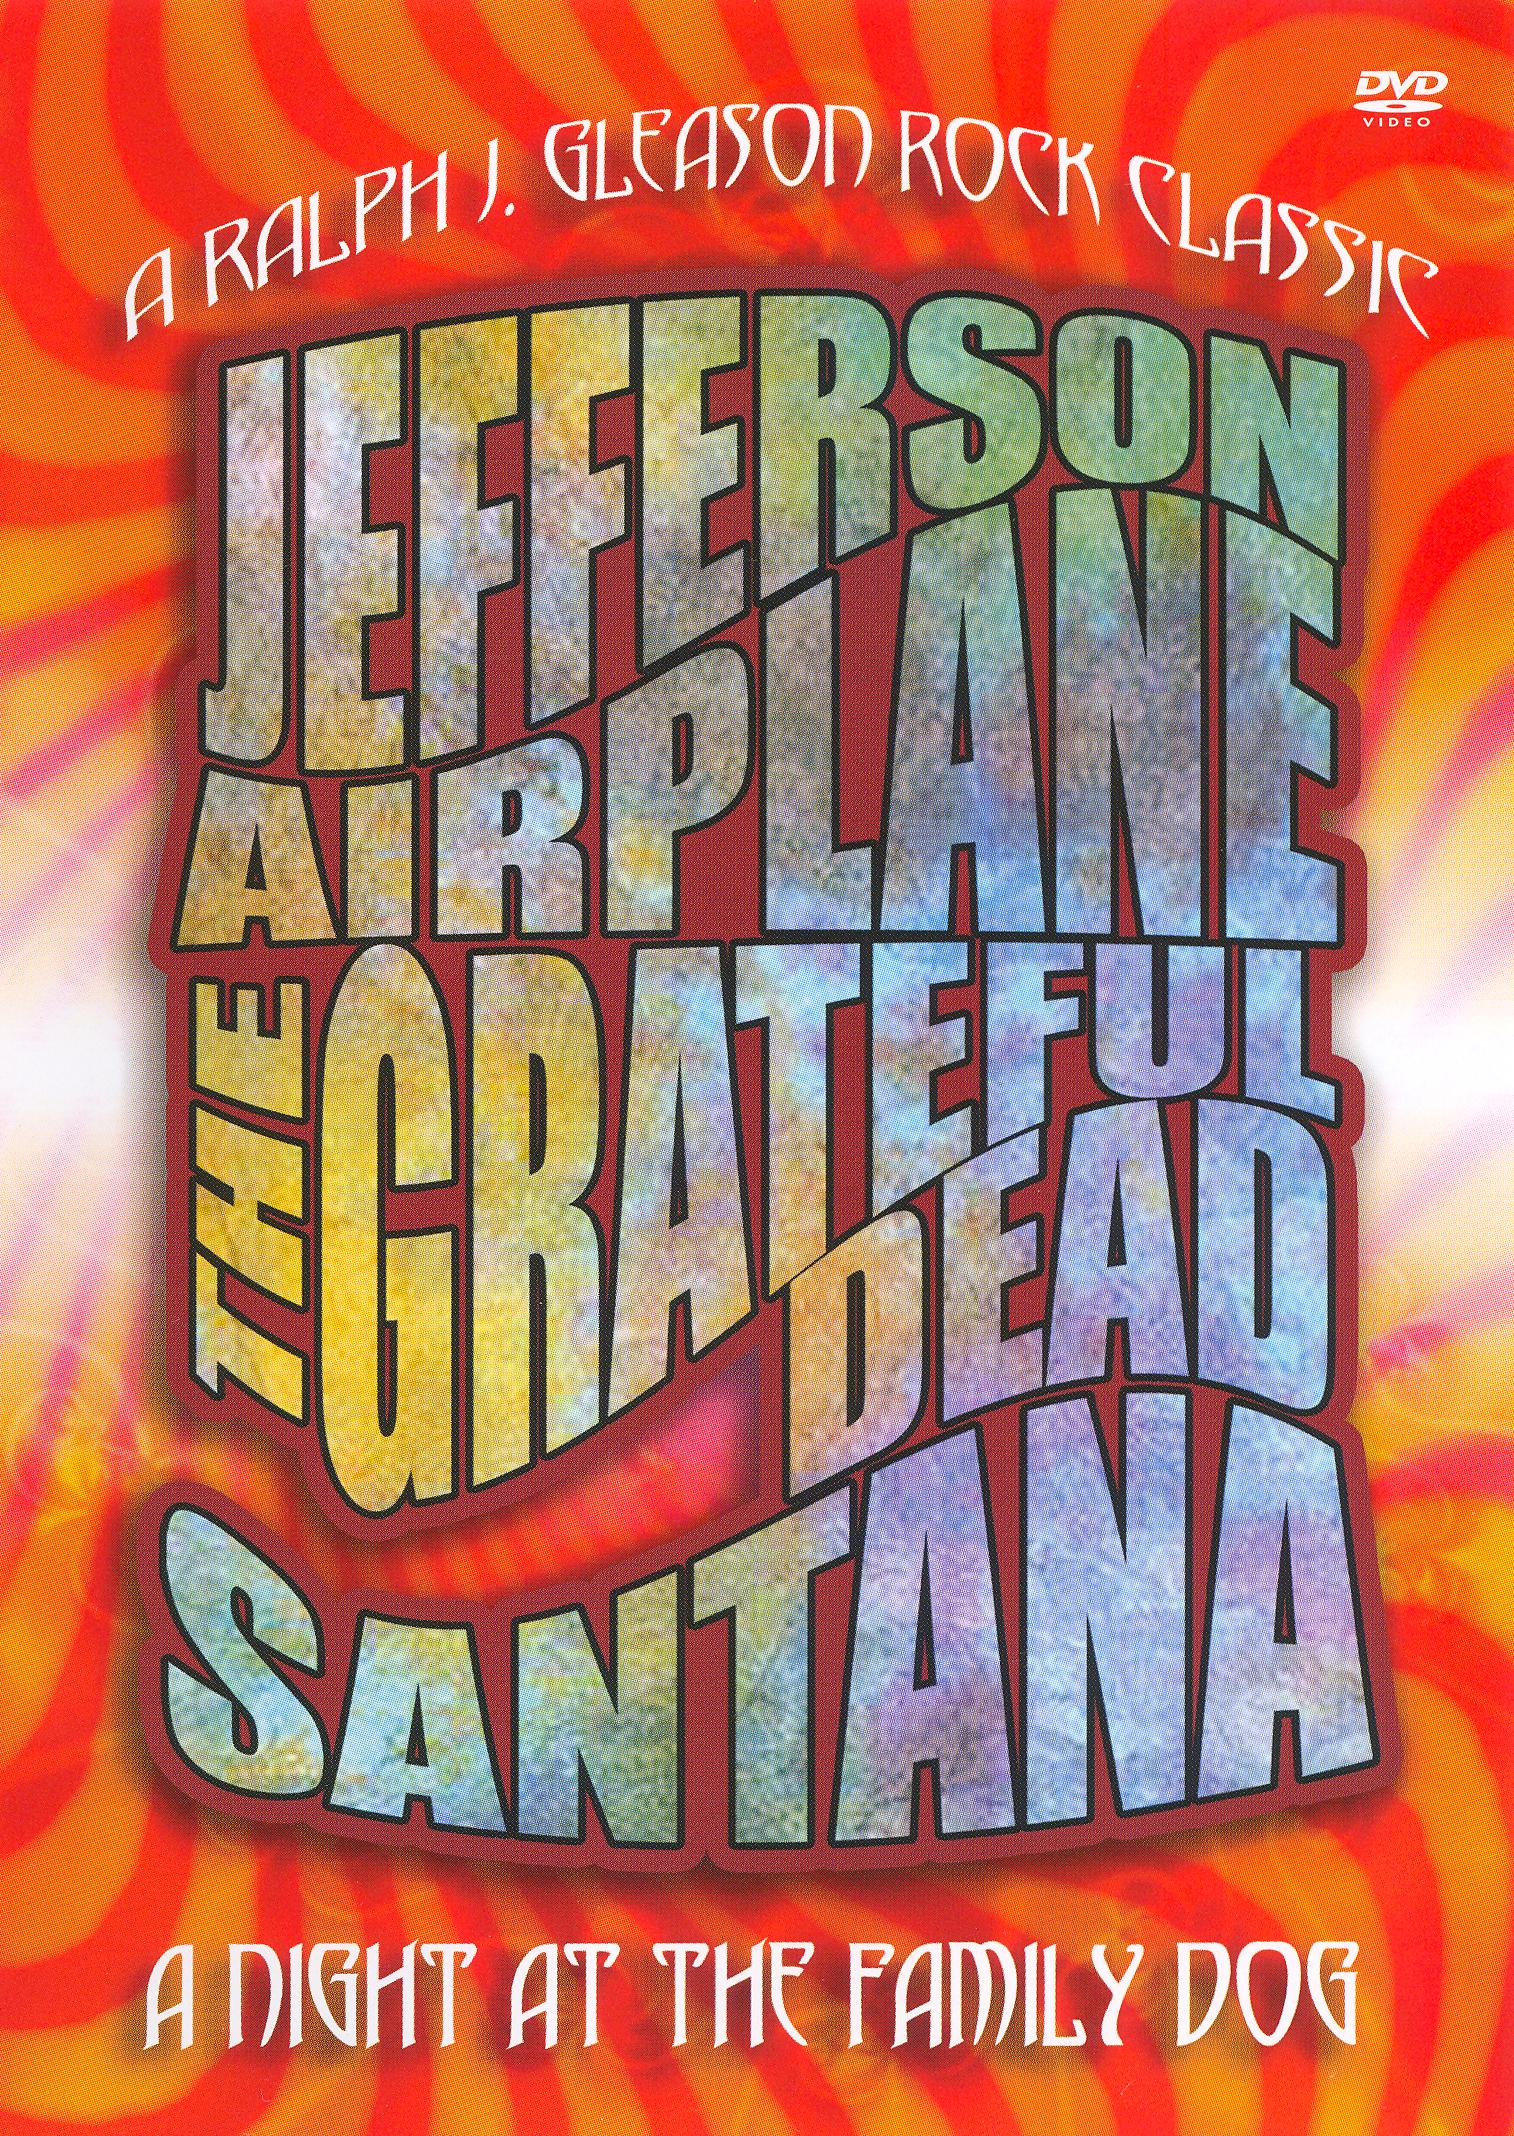 A Night at the Family Dog 1970: Santana, Grateful Dead, Jefferson Airplane